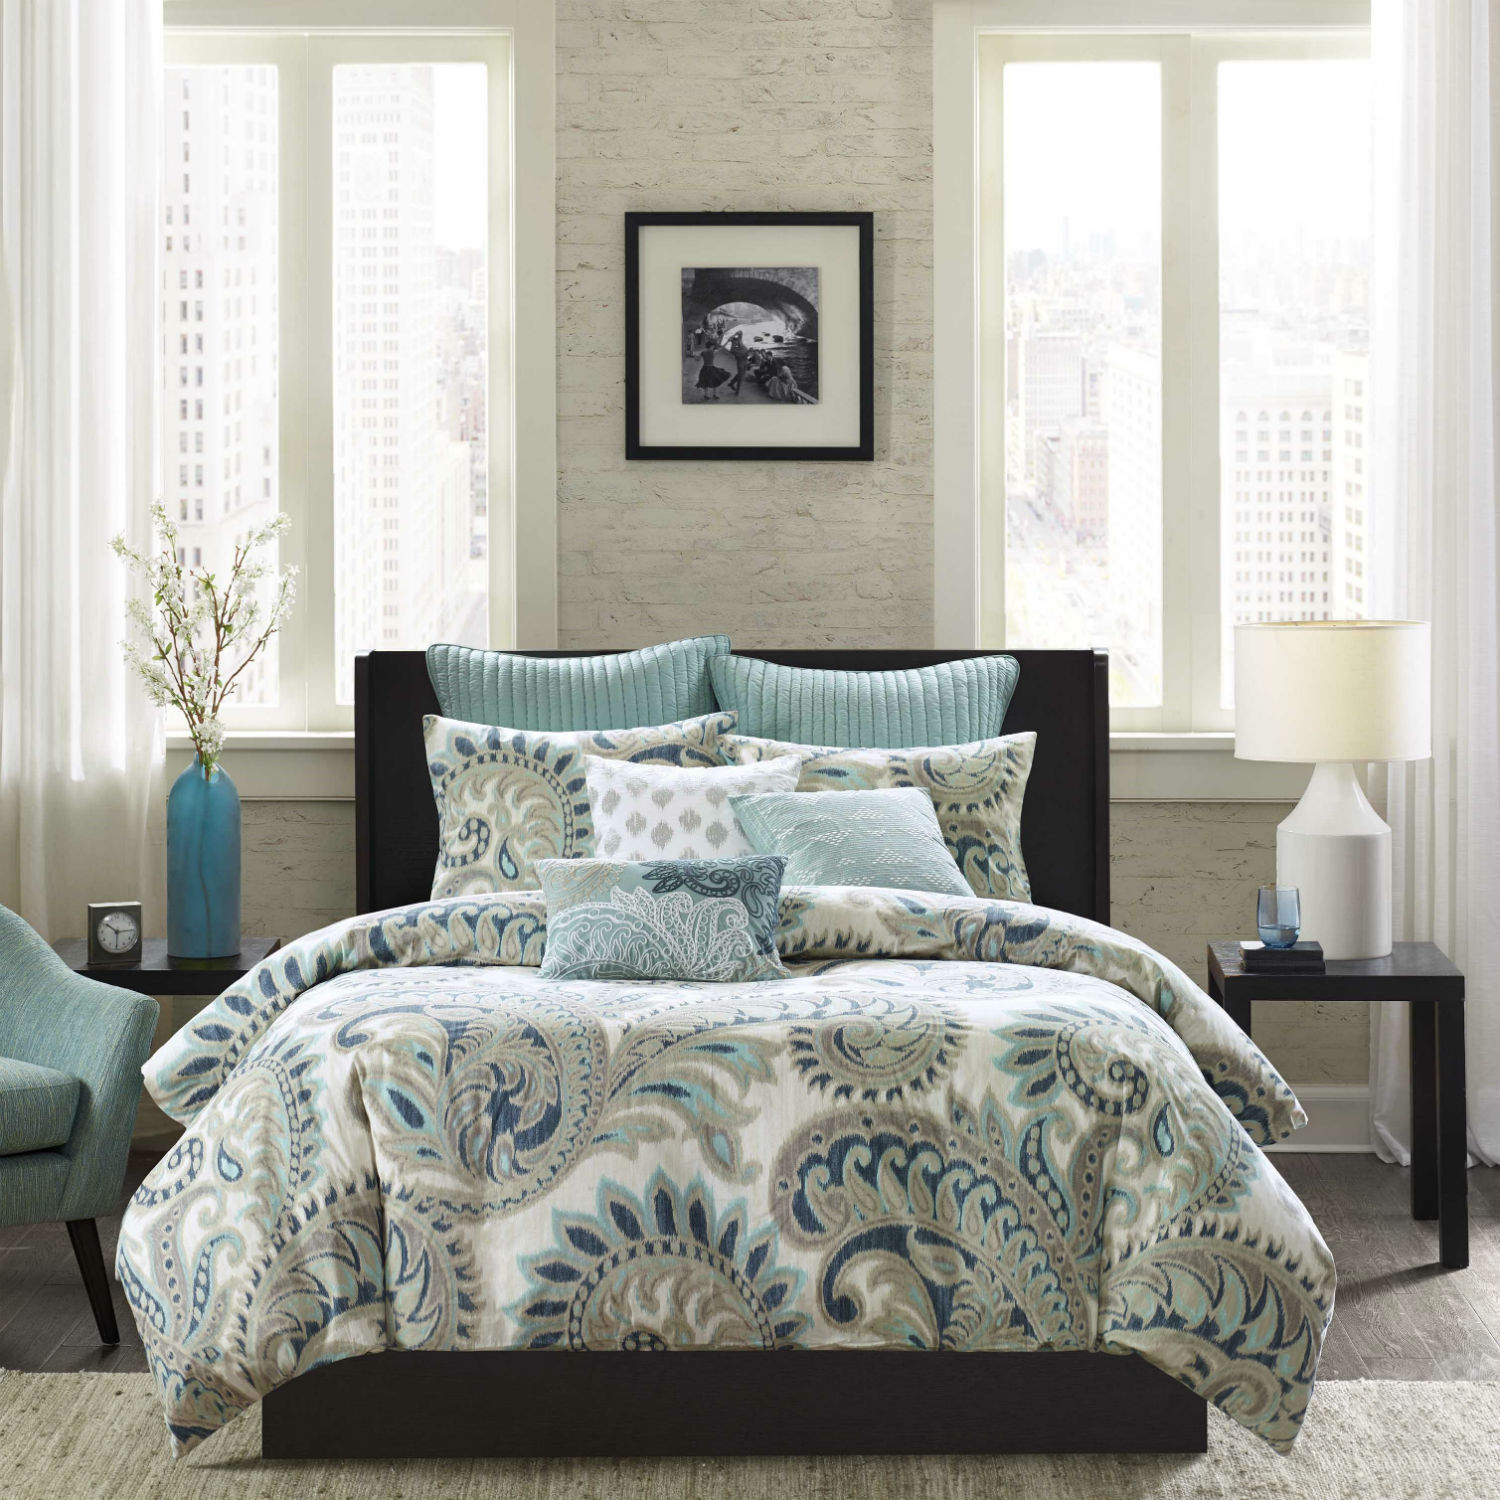 Tan Duvet Cover King Mira By Ink & Ivy Bedding - Beddingsuperstore.com